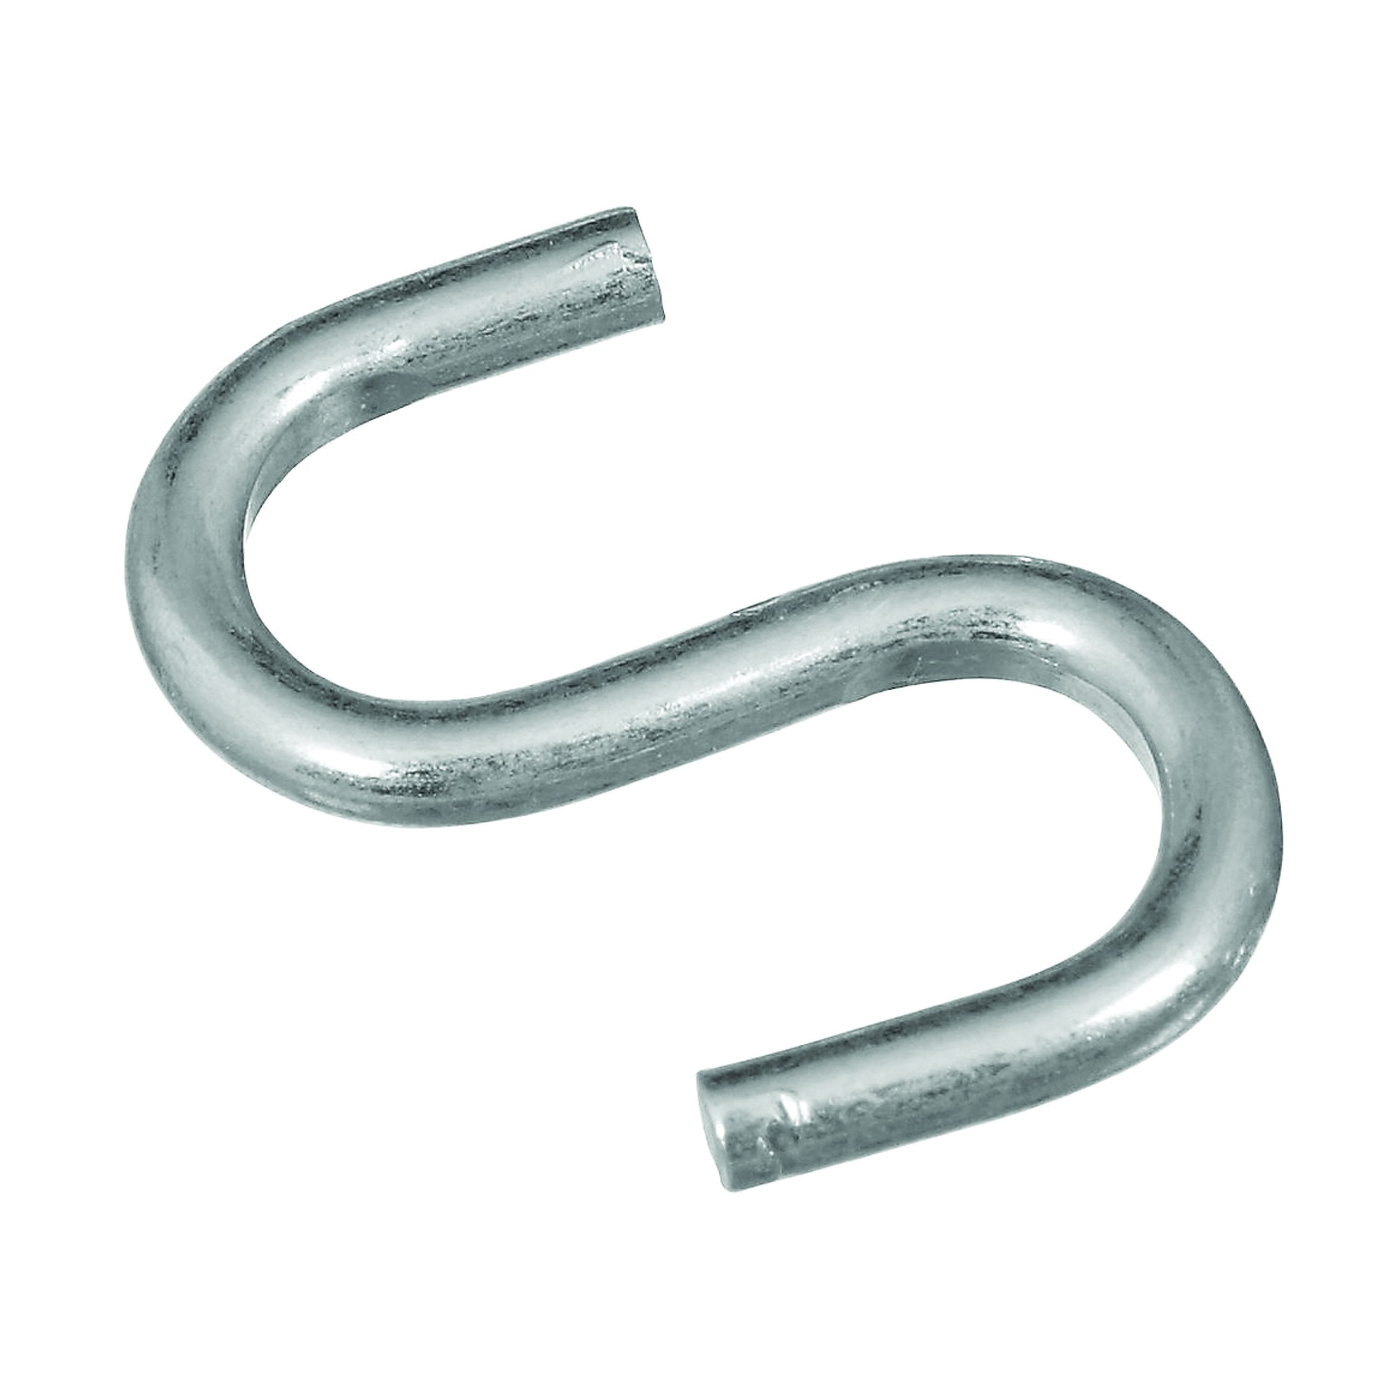 Picture of National Hardware N344-796 S-Hook, 20 lb Working Load, Steel, Zinc